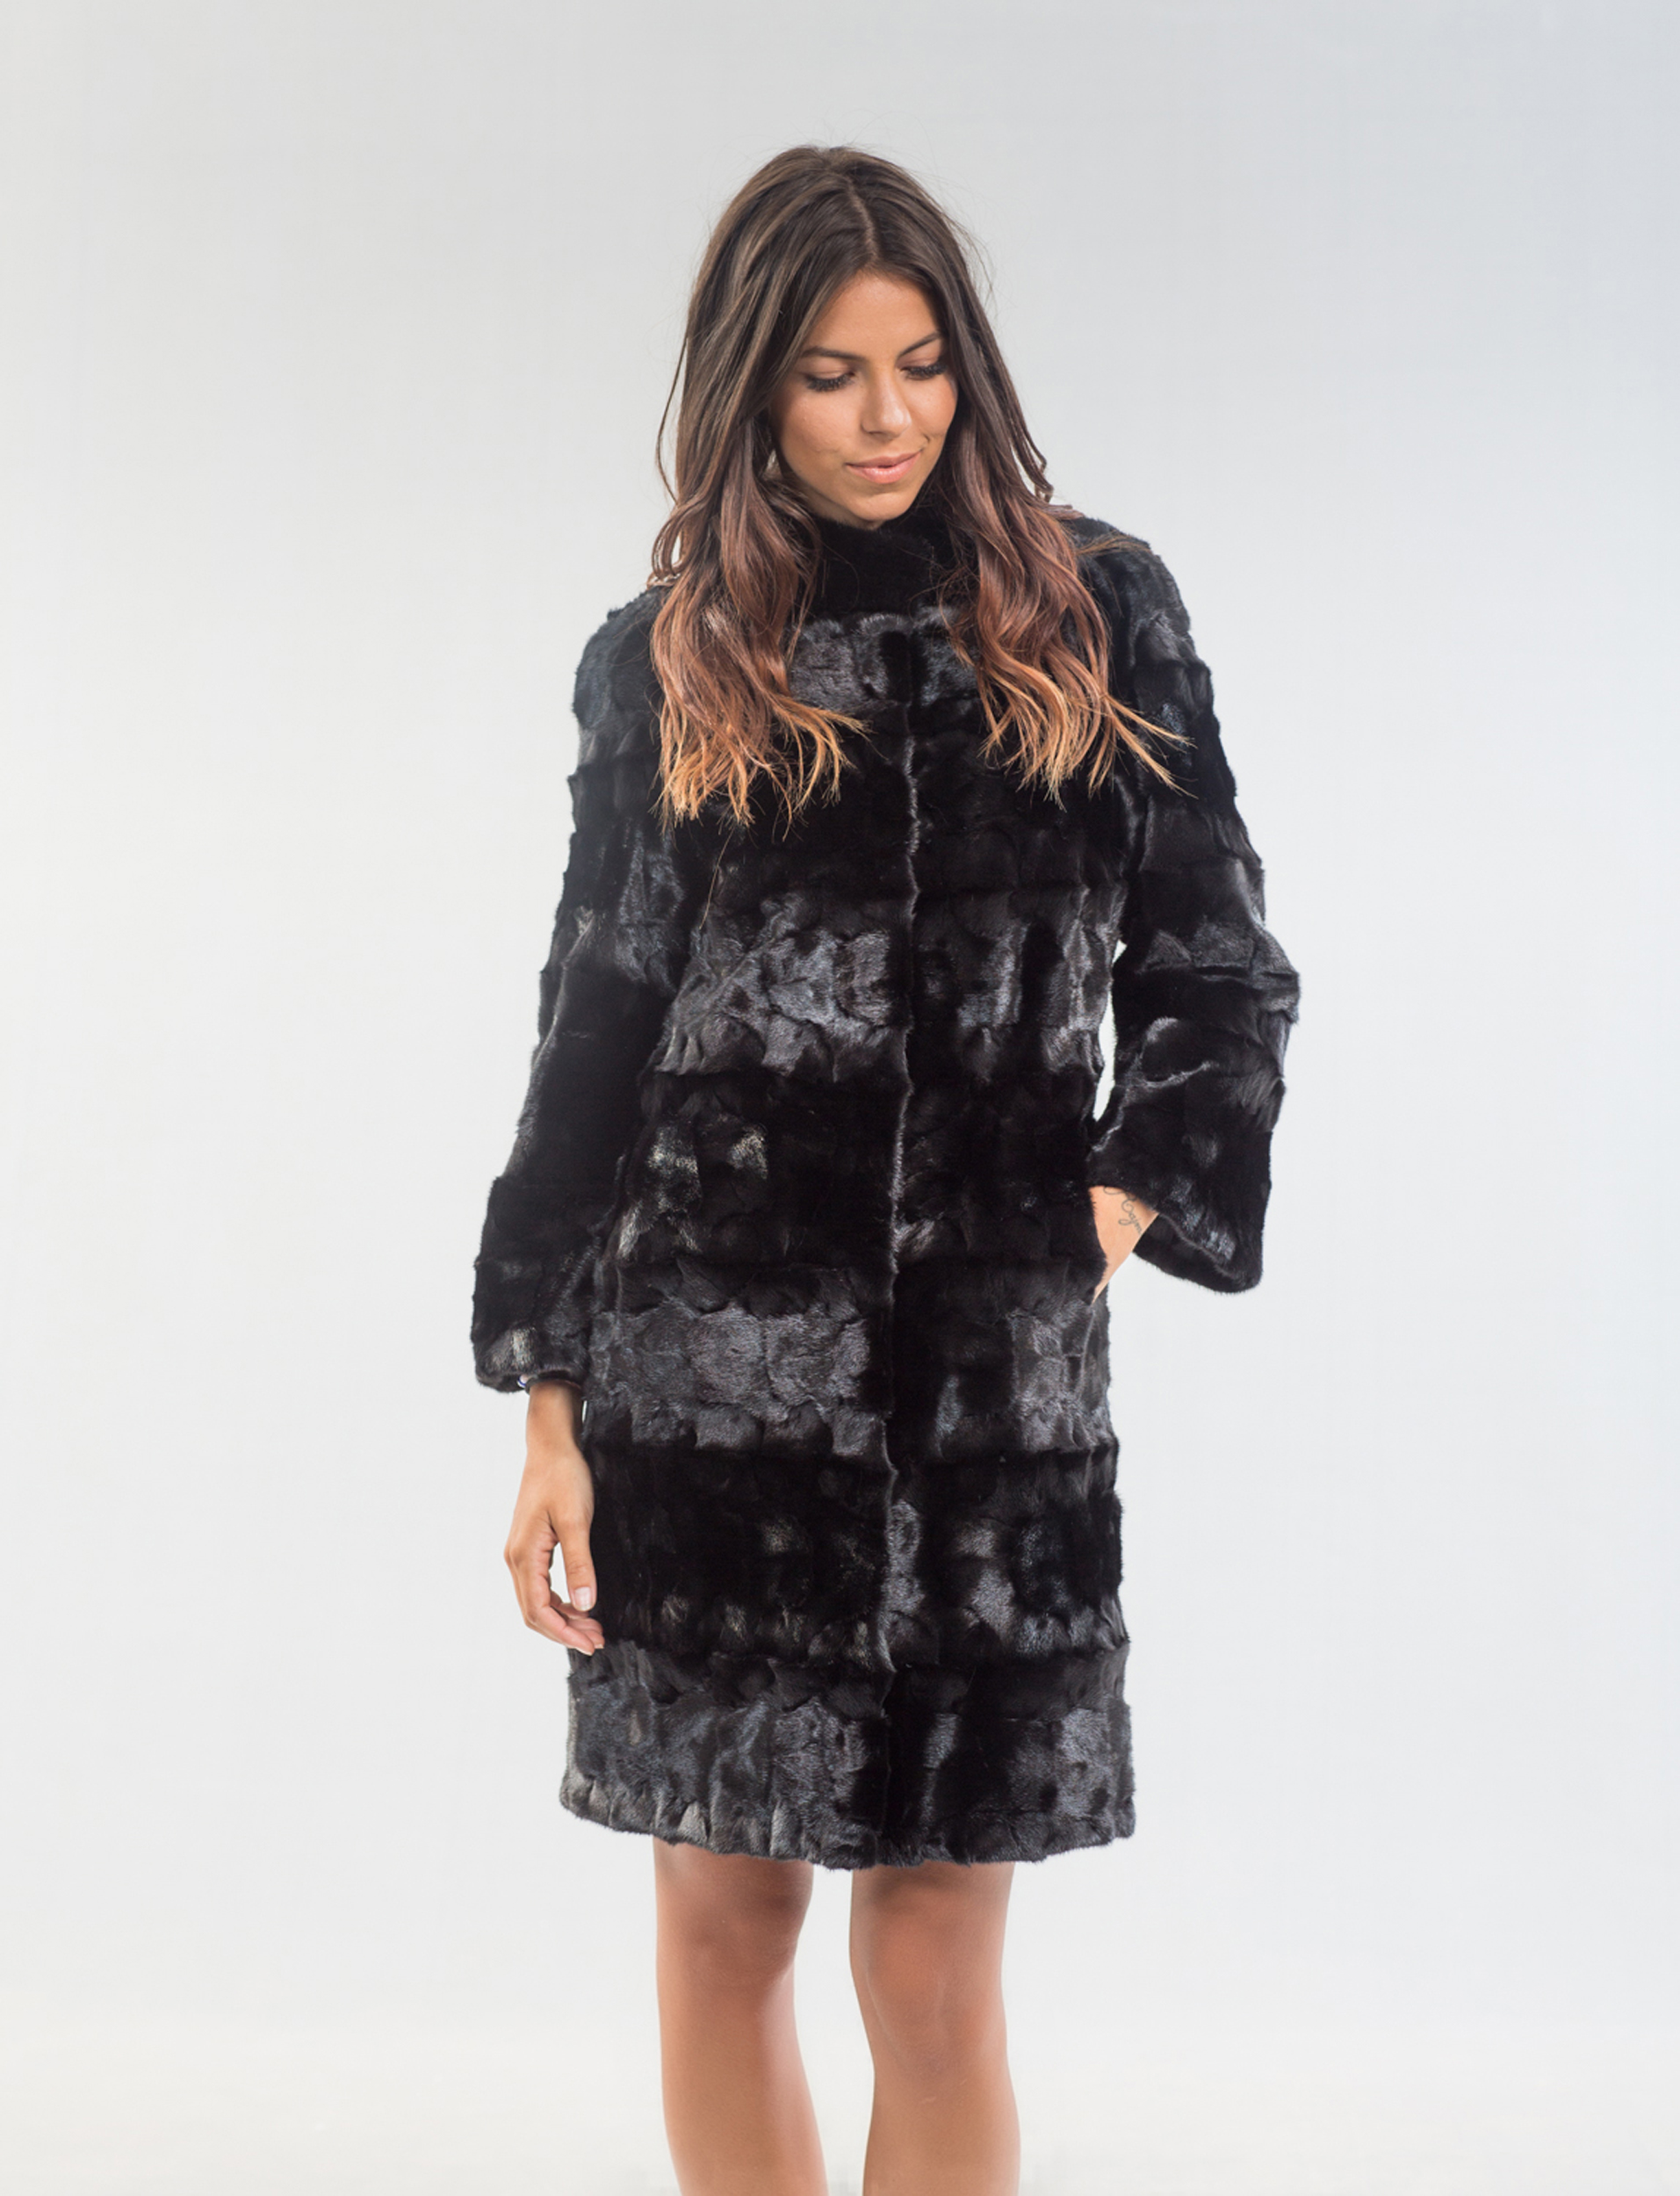 Black Head Mink Fur Coat. 100% Real Fur Coats and Accessories.